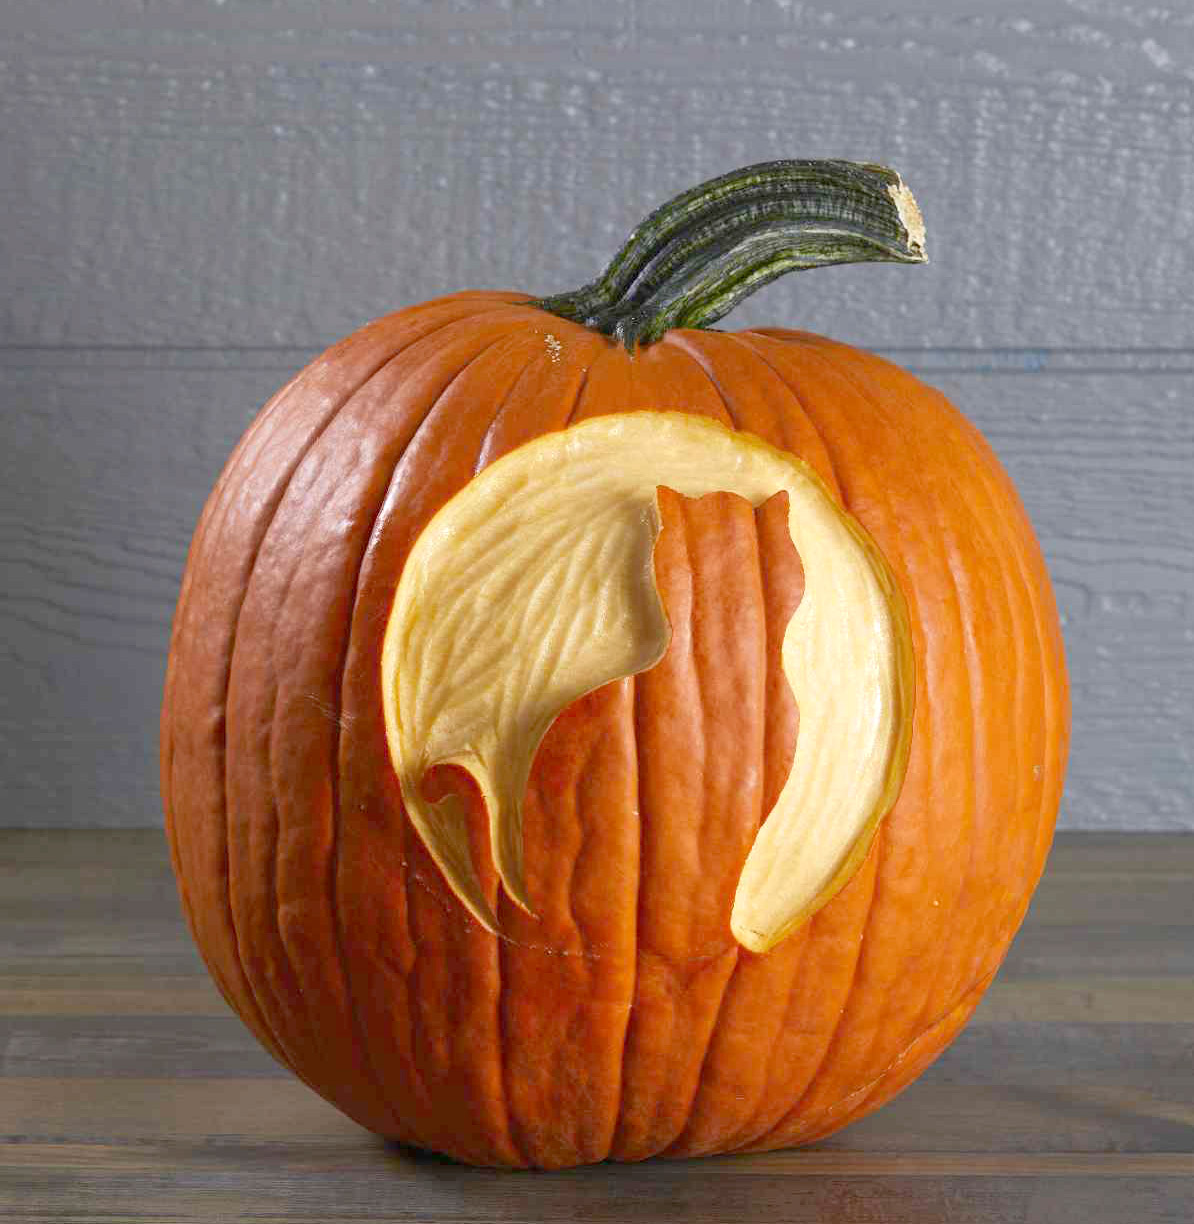 Easy pumpkin carving ideas to try this halloween